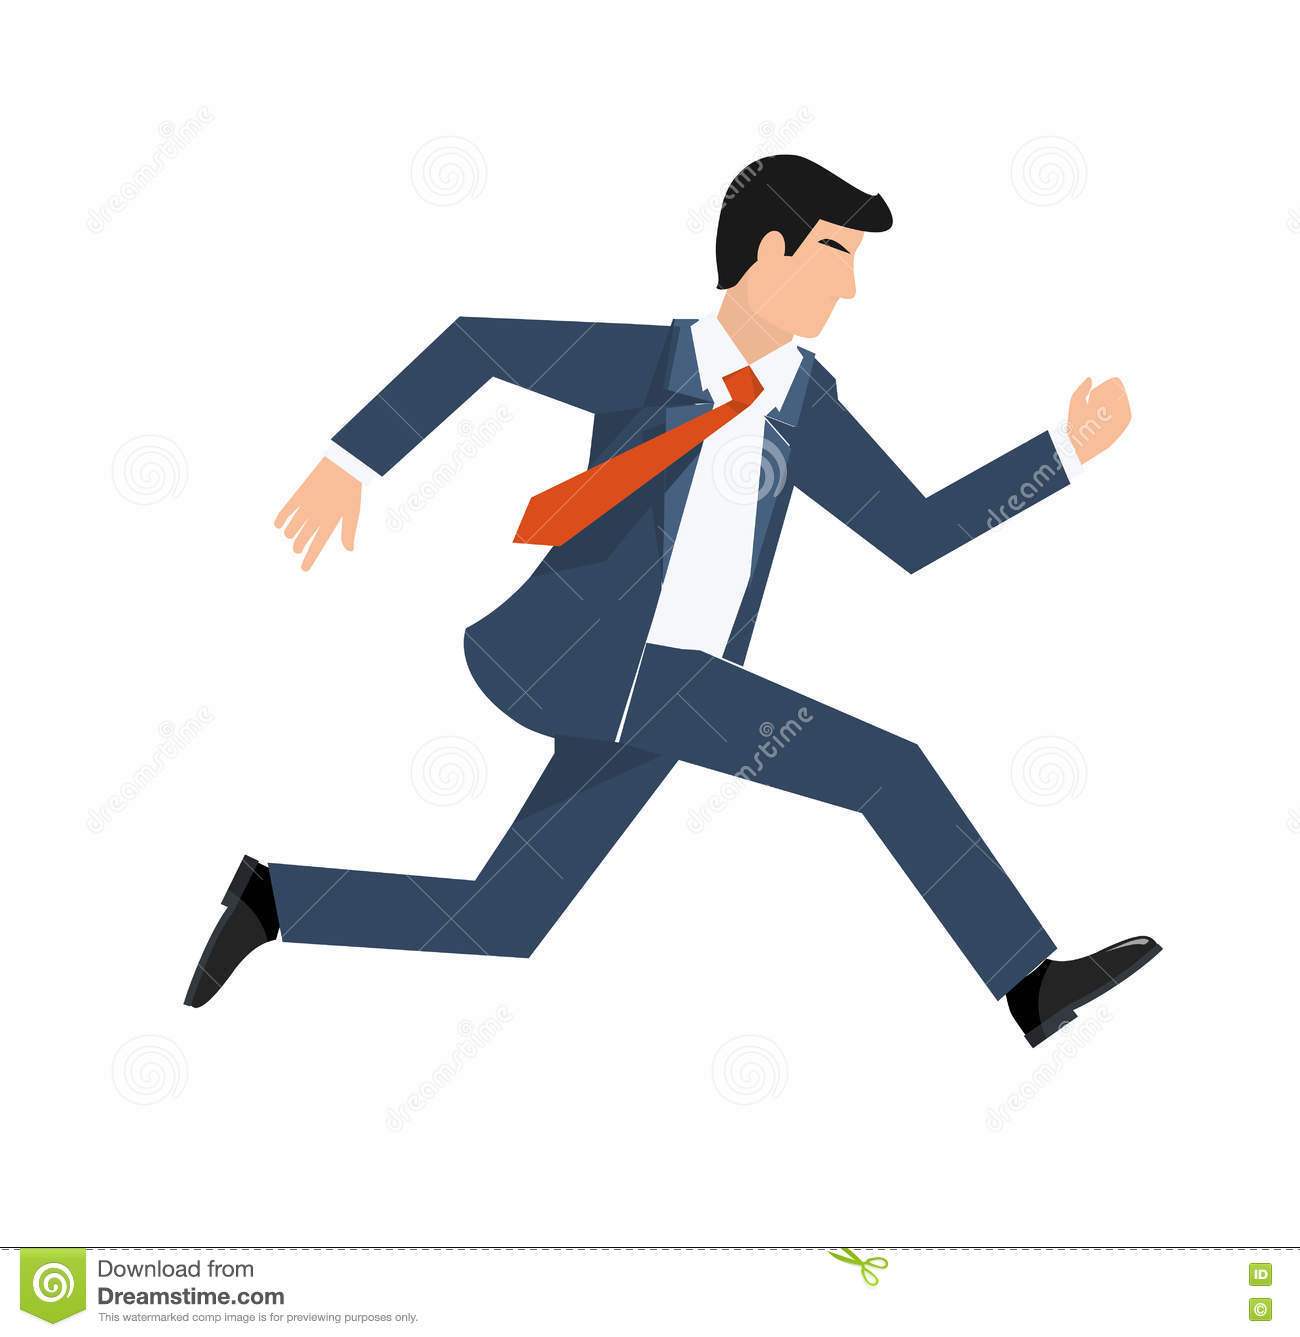 flat-style-vector-illustration-businessman-running-business-concept-73313460.jpg